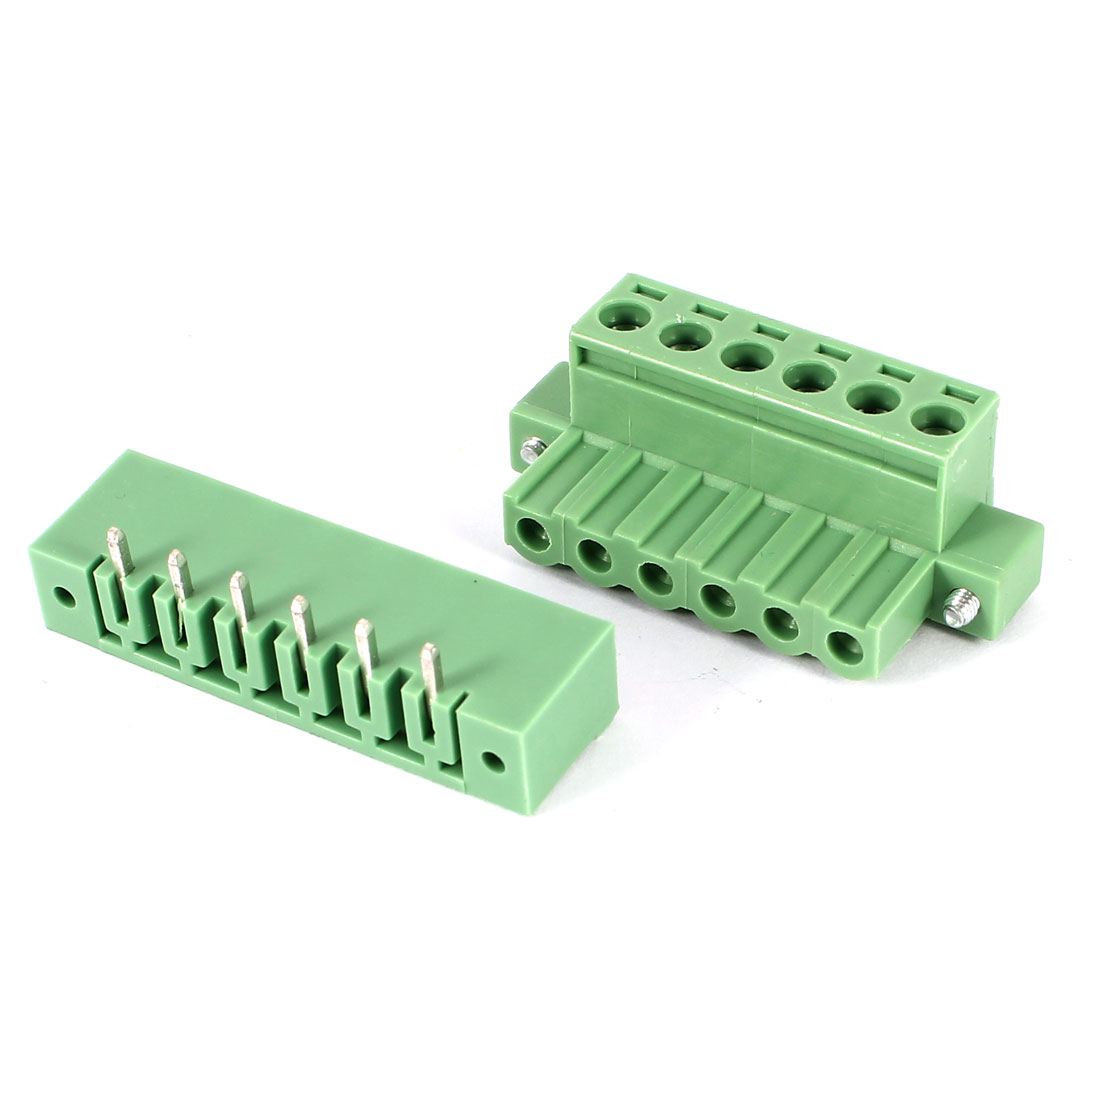 Green KF2EDGK 5.08mm 6Position Right Angle 6Pin Pluggable Screw Terminal Block Connector 300V 10A